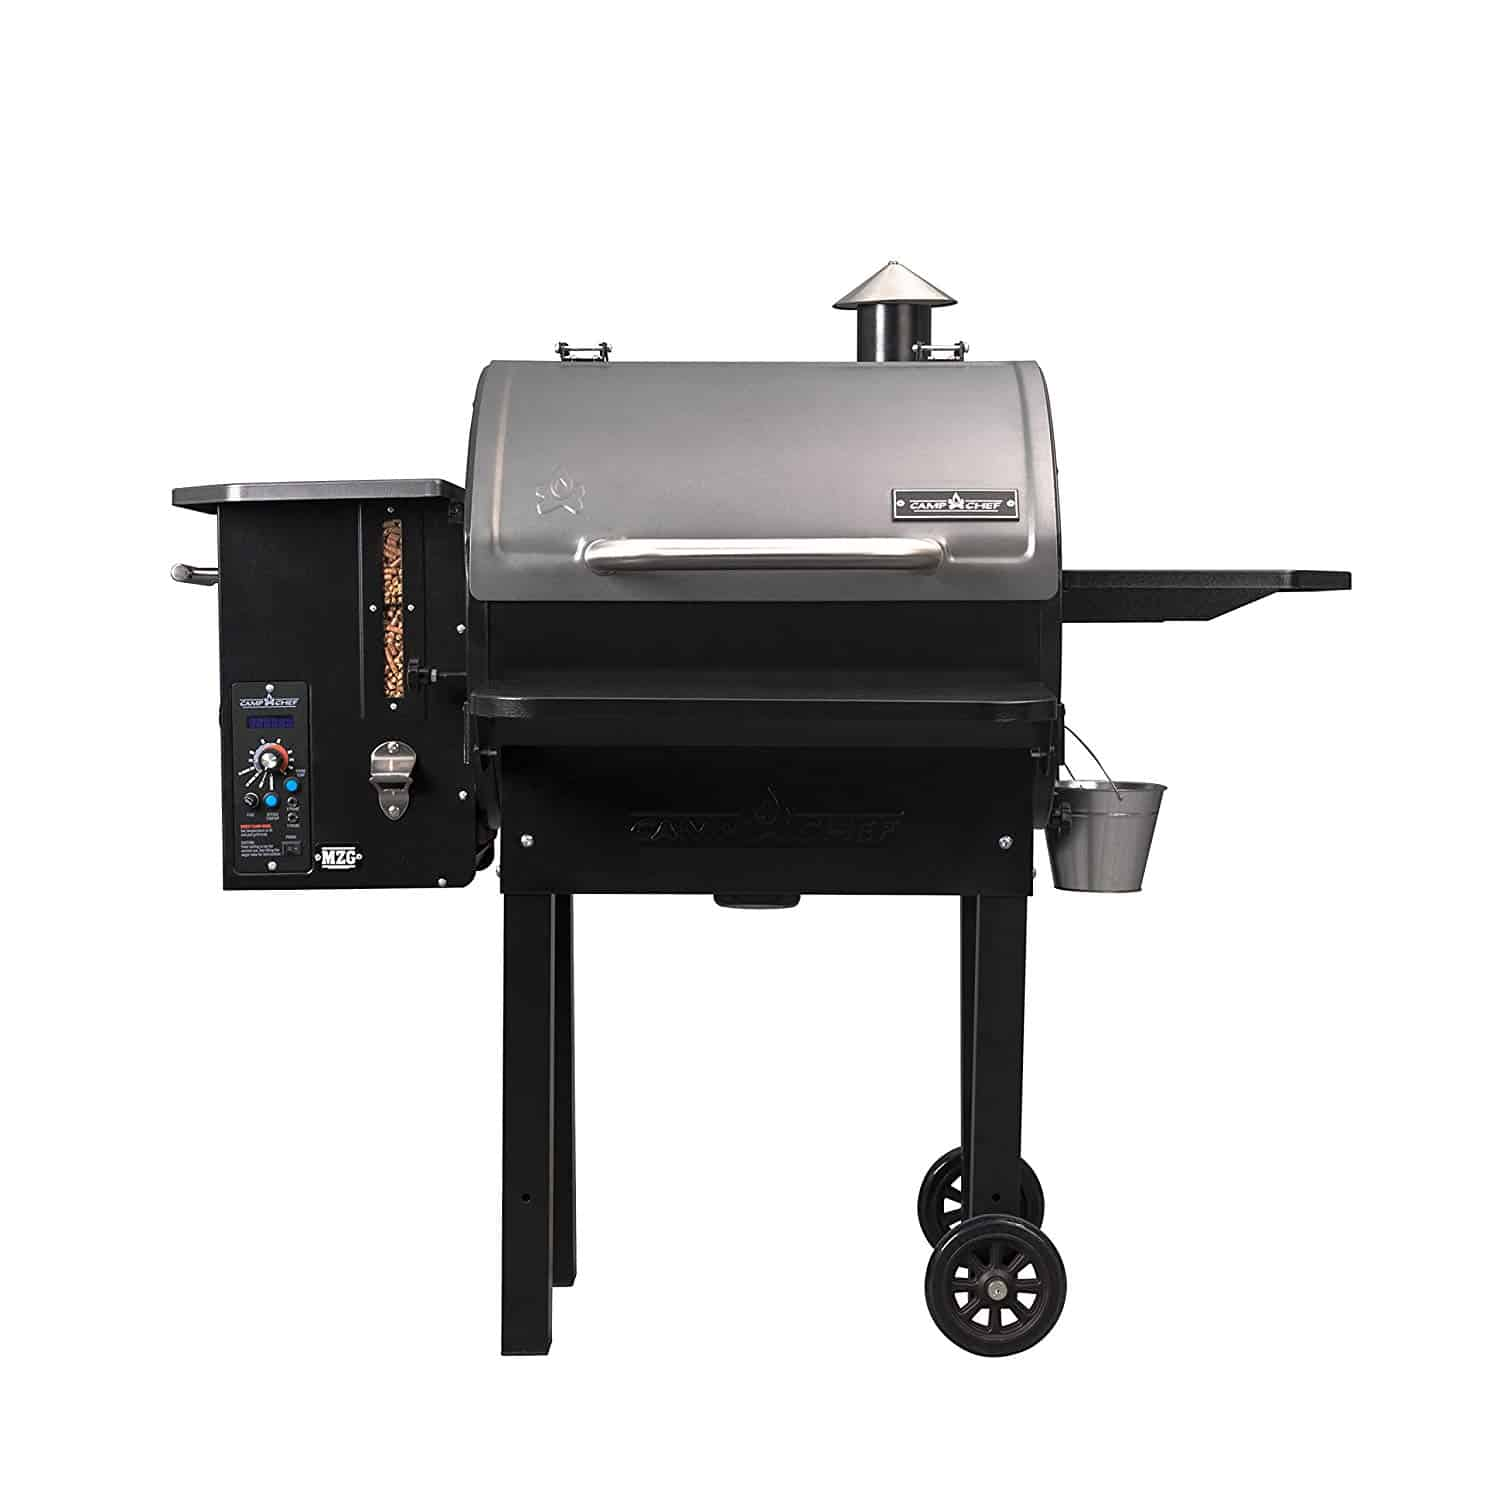 Camp Chef PG24MZG SmokePro Slide Smoker Wood Pellet Grill